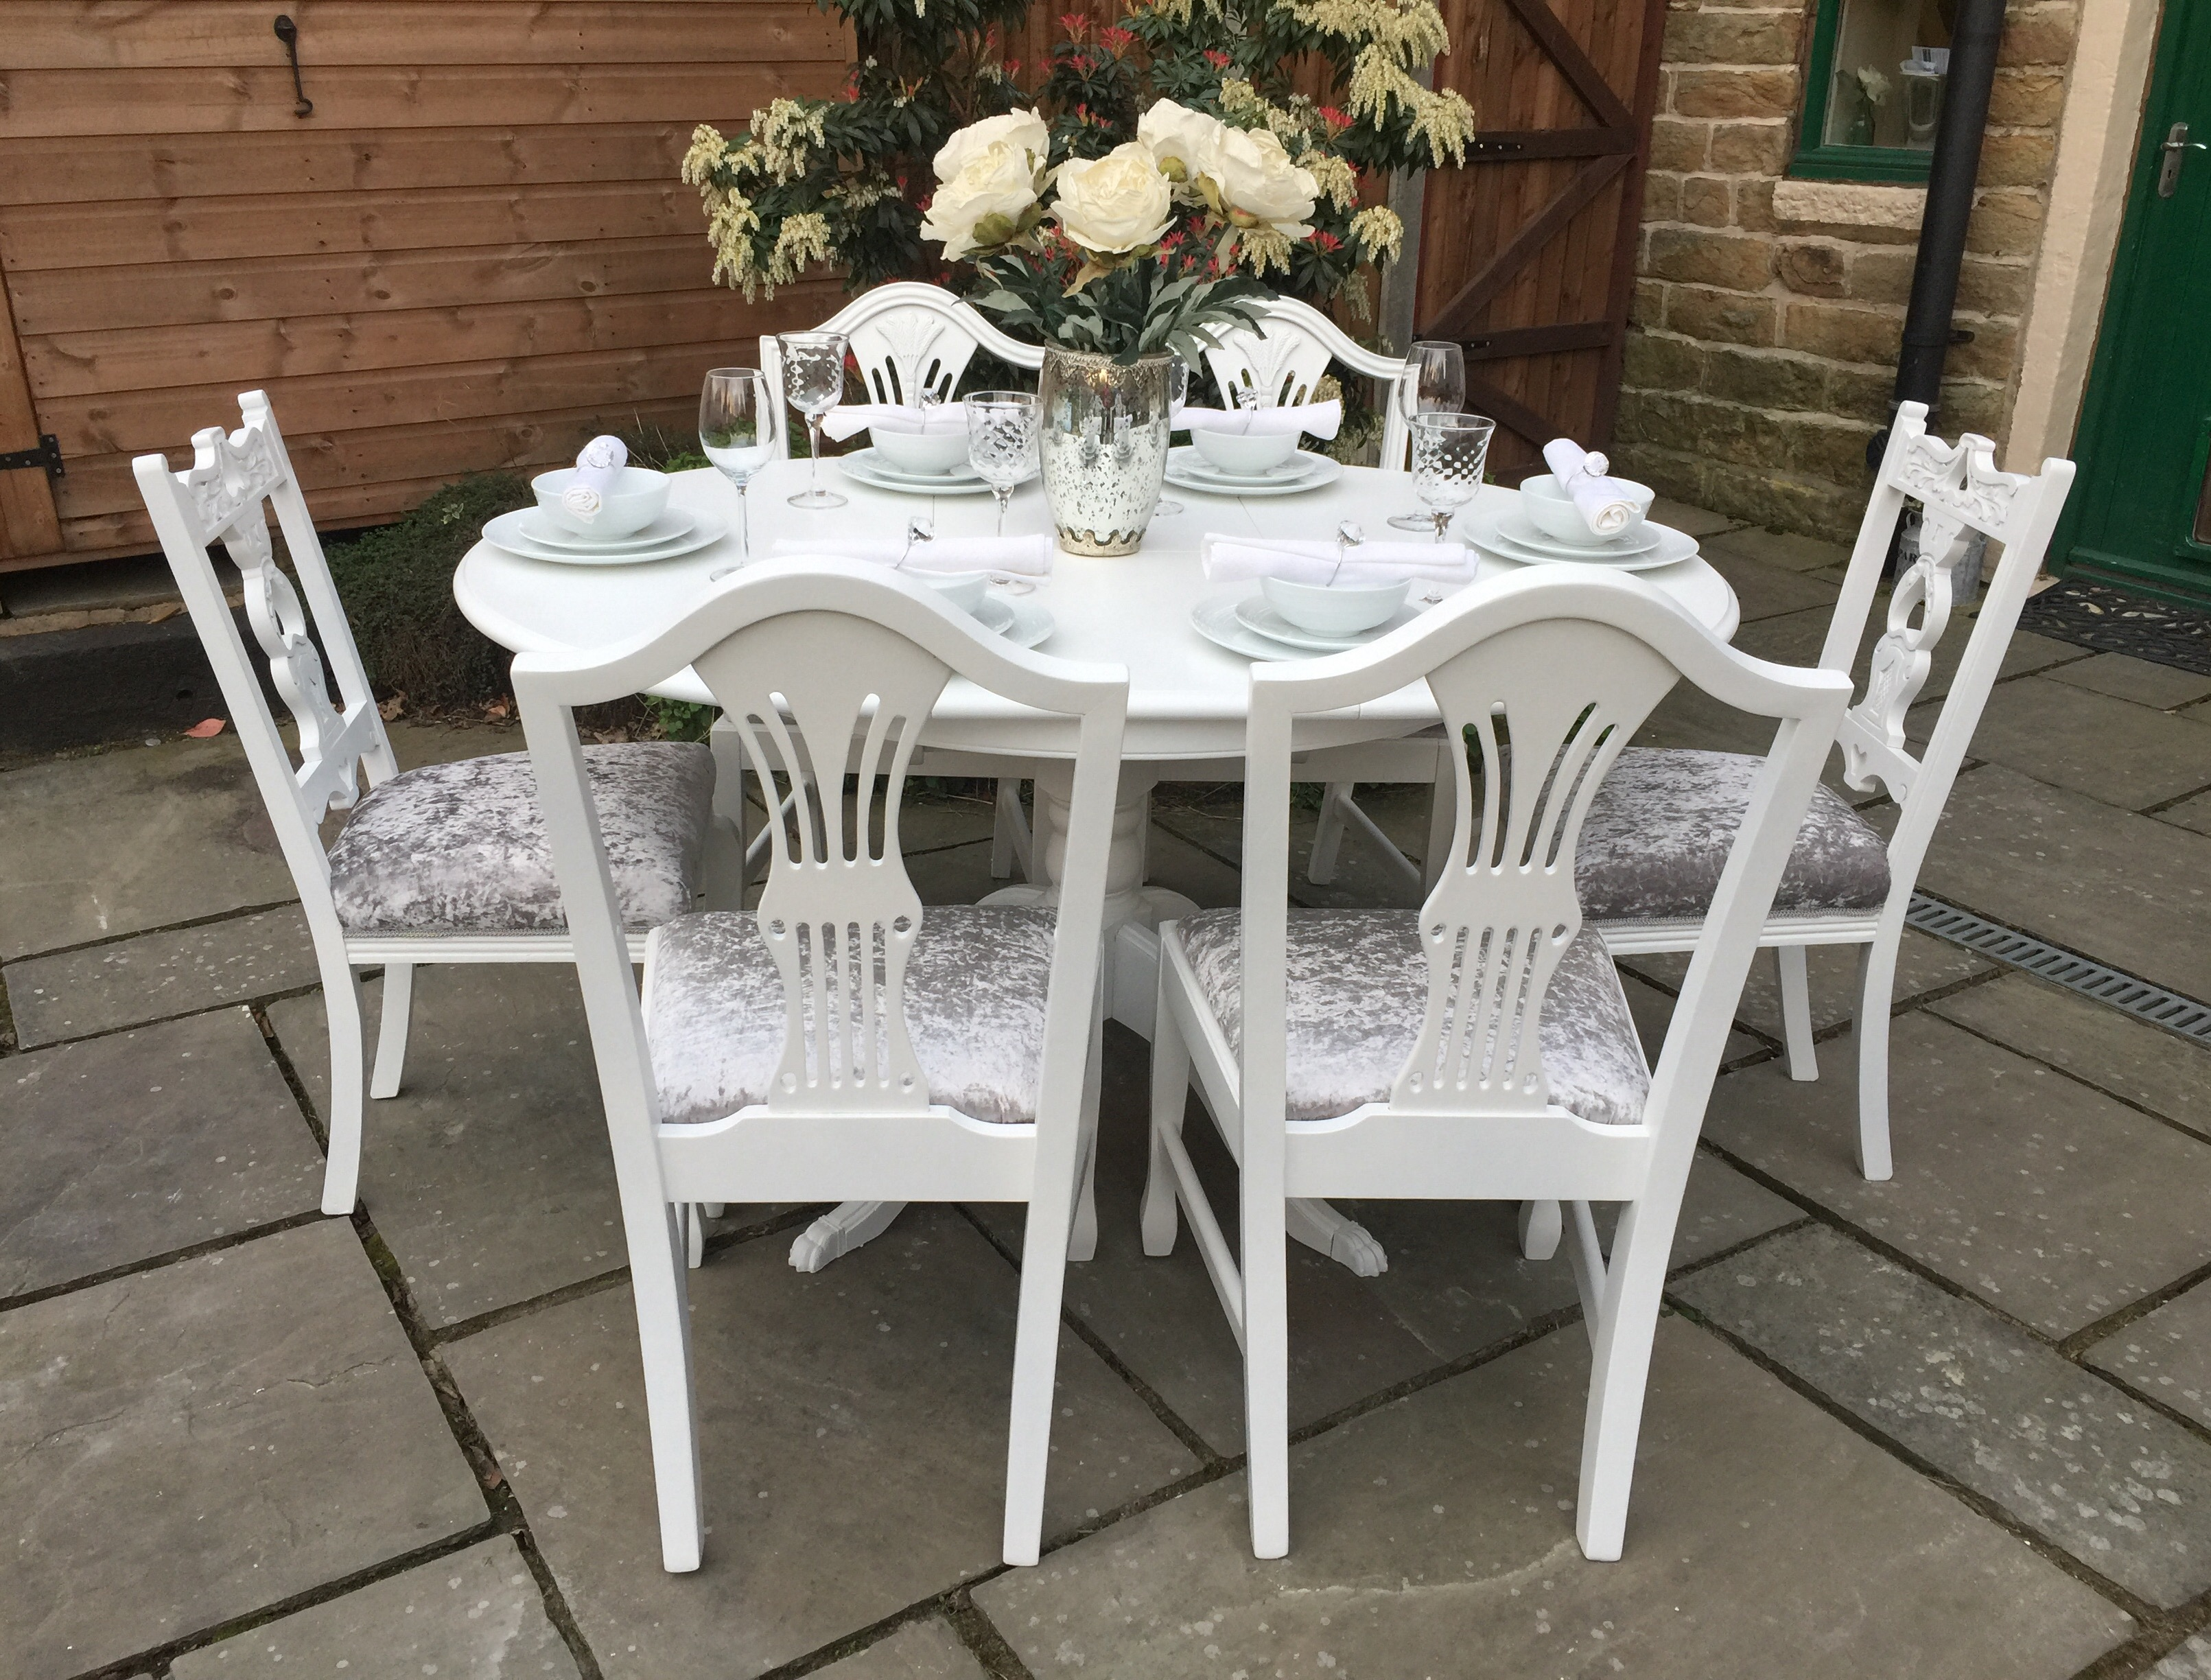 White Round Dining Table & 4 Chairs